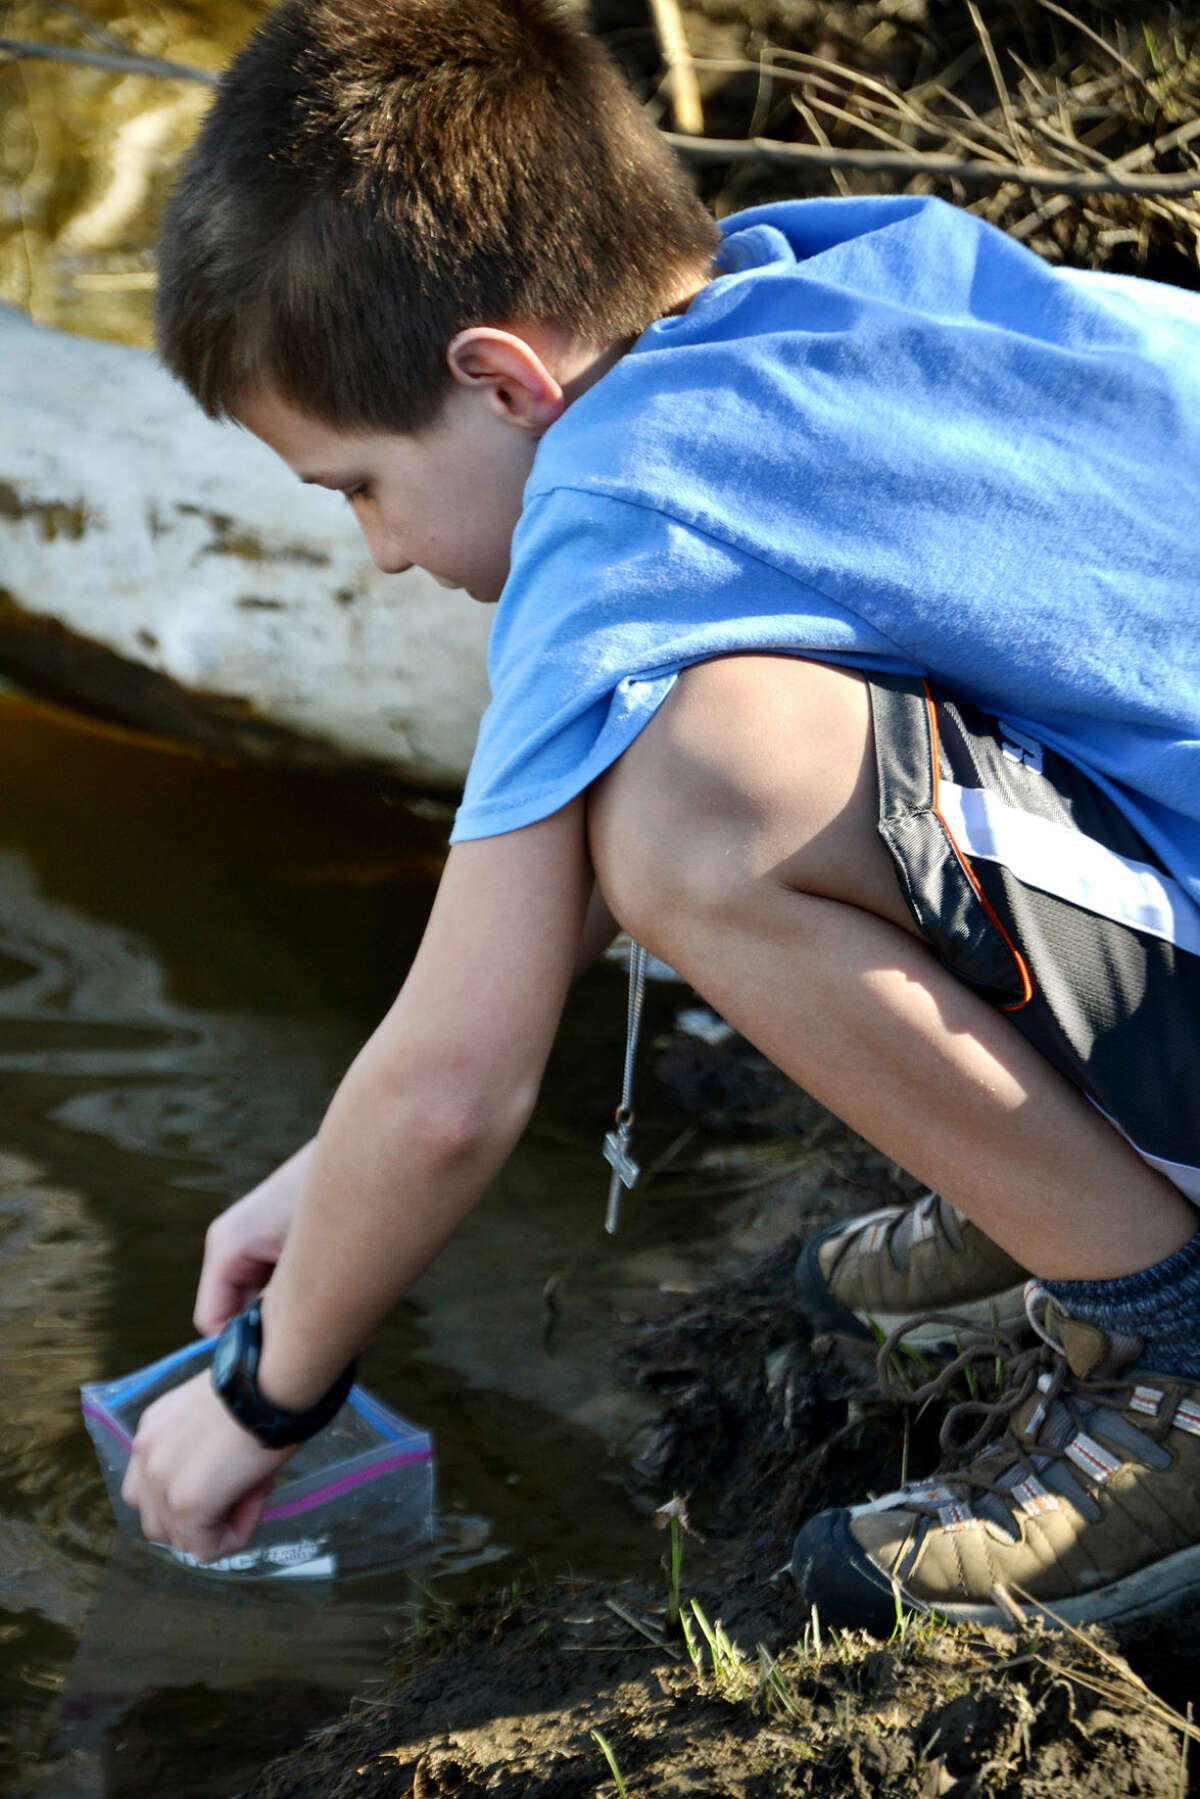 Nathan Striebel prepares to release a salmon smelt into the Chippewa River.